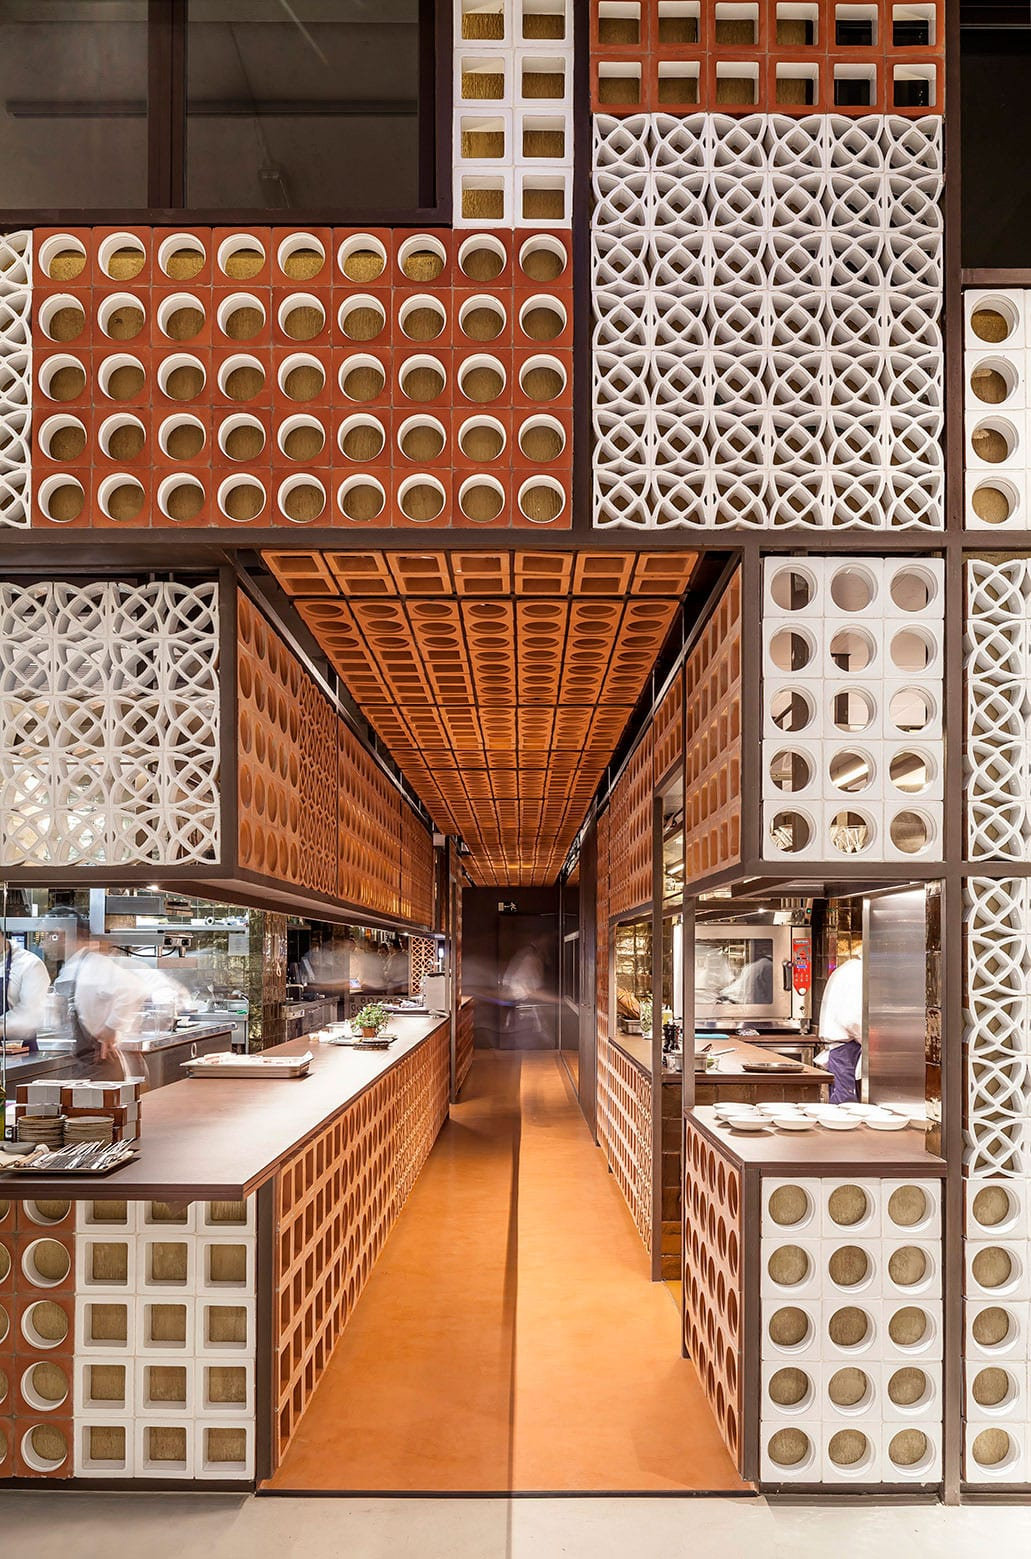 Disfrutar Restaurant in Barcelona, Spain by El Equipo Creativo | Yellowtrace